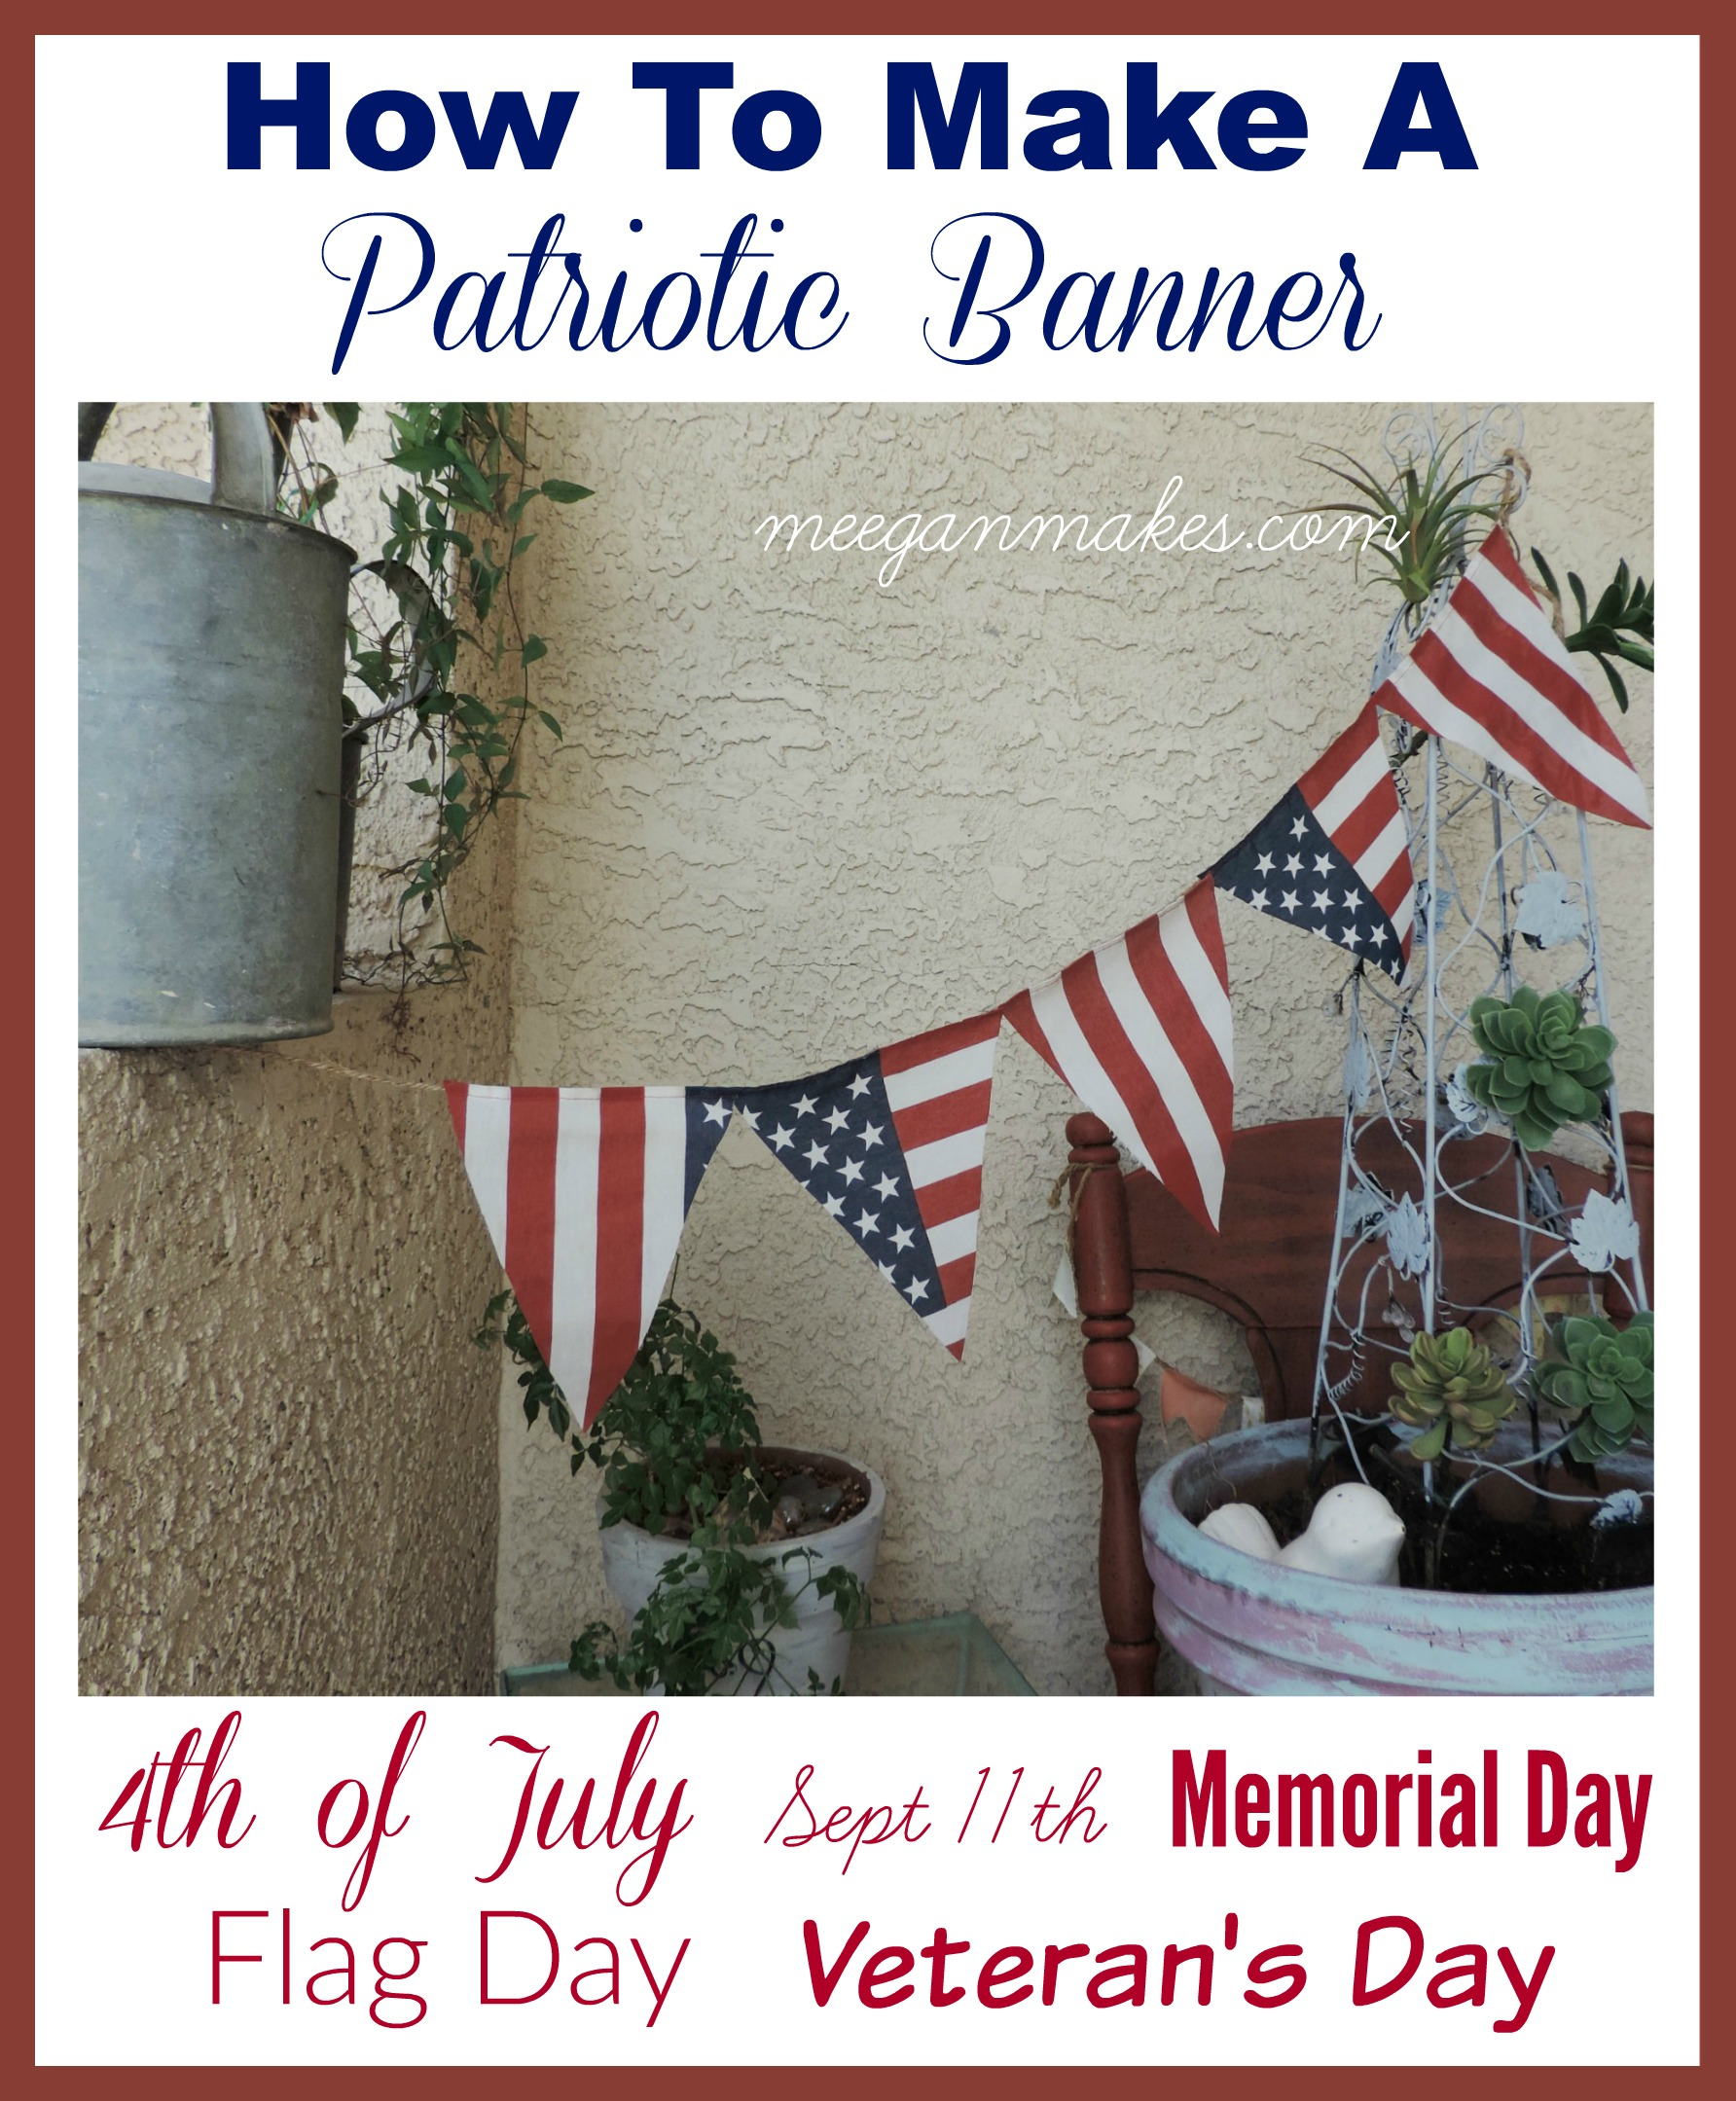 How To Make A Patriotic Banner by meeganmakes.com